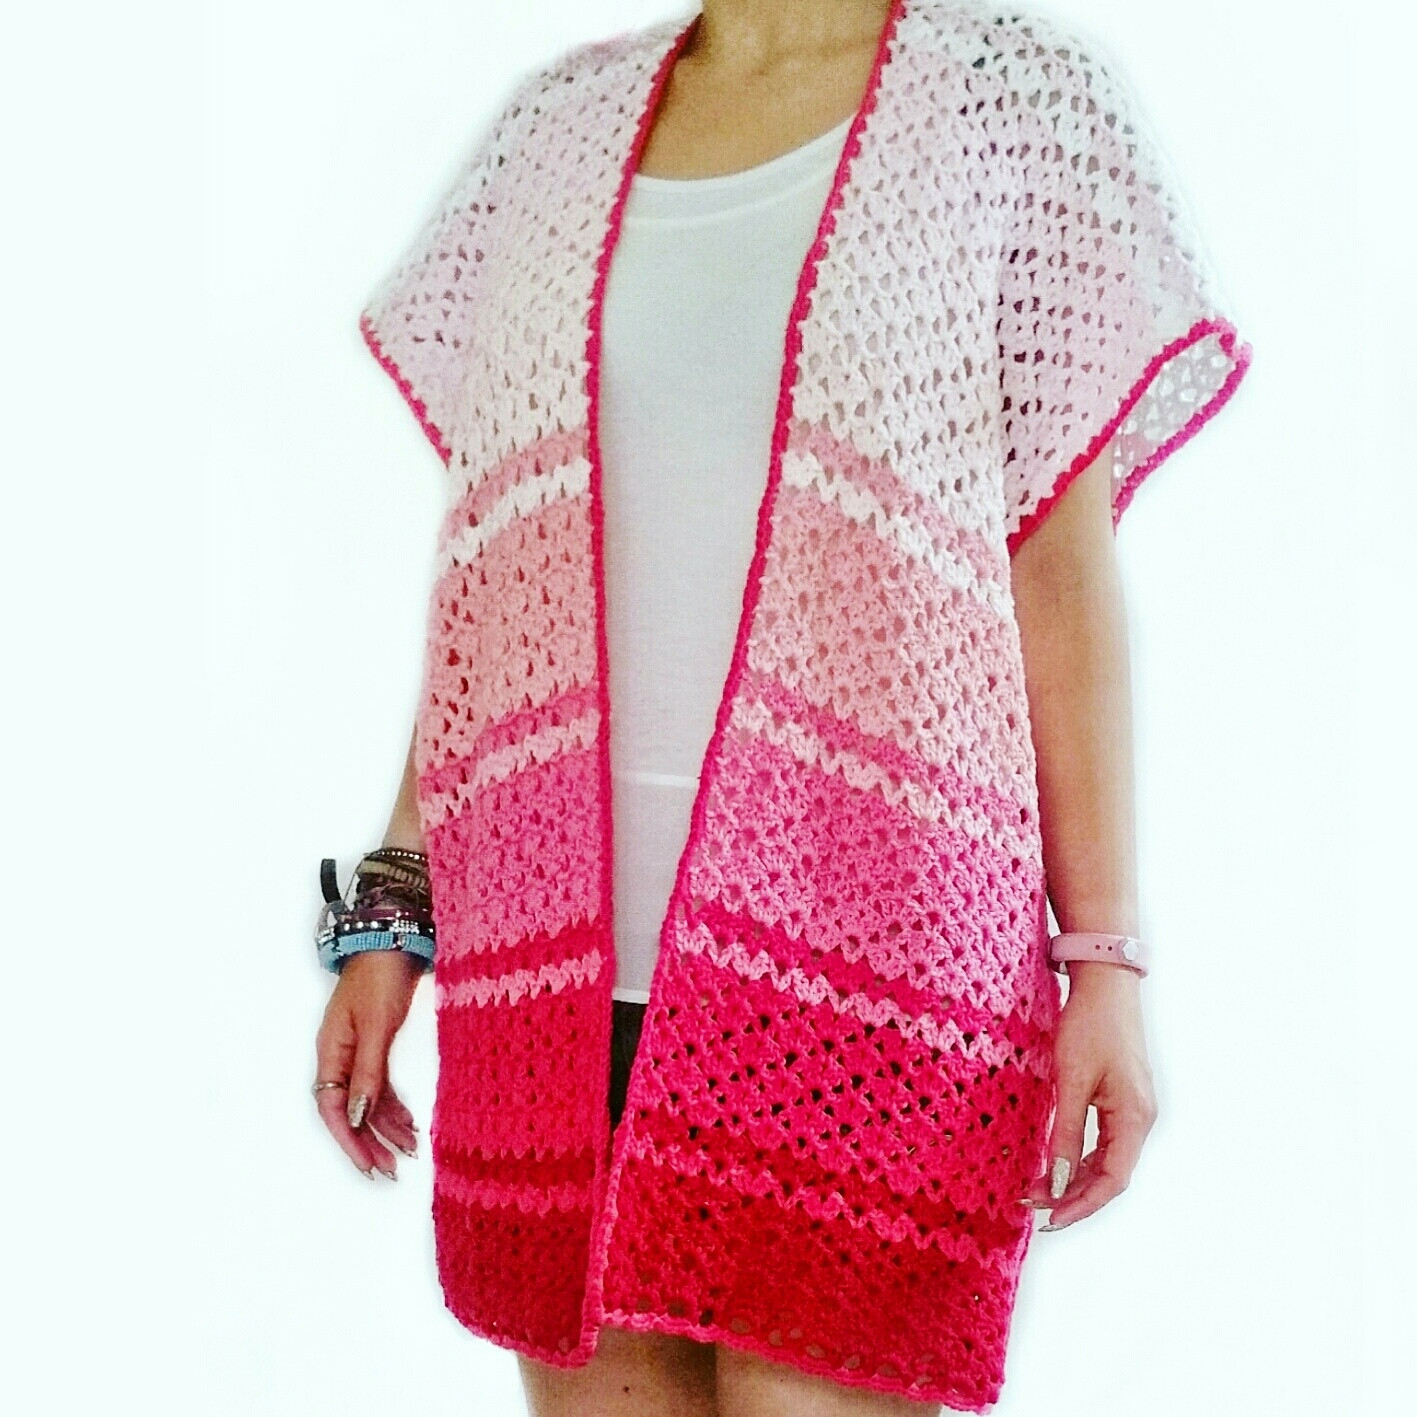 Awesome Set Free My Gypsy soul Crochet Cover Up Pattern Of Amazing 43 Ideas Crochet Cover Up Pattern